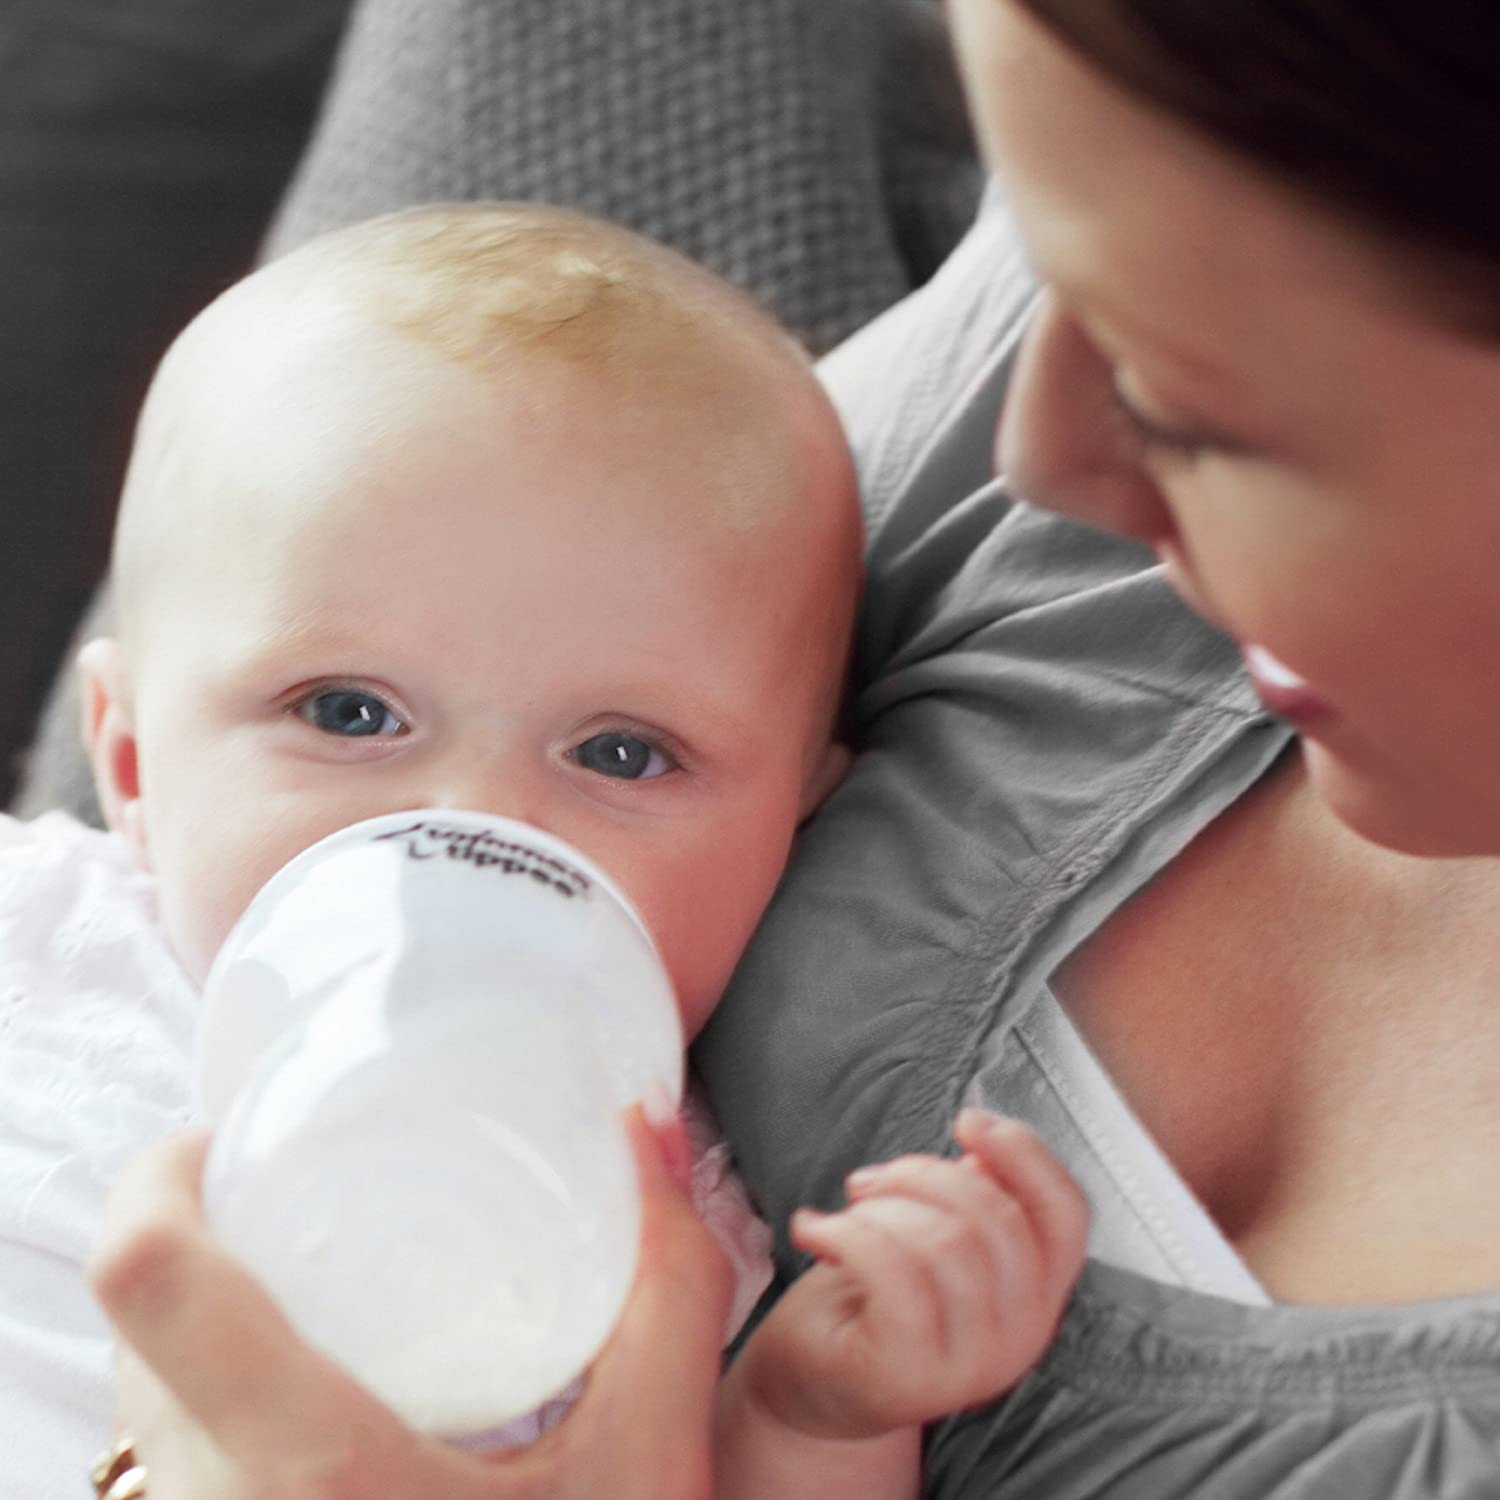 differences and similarities between bottle feeding and breastfeeding The differences between breastfeeding and bottle feeding the differences between breastfeeding and bottle feeding the differences between breastfeeding and bottle.